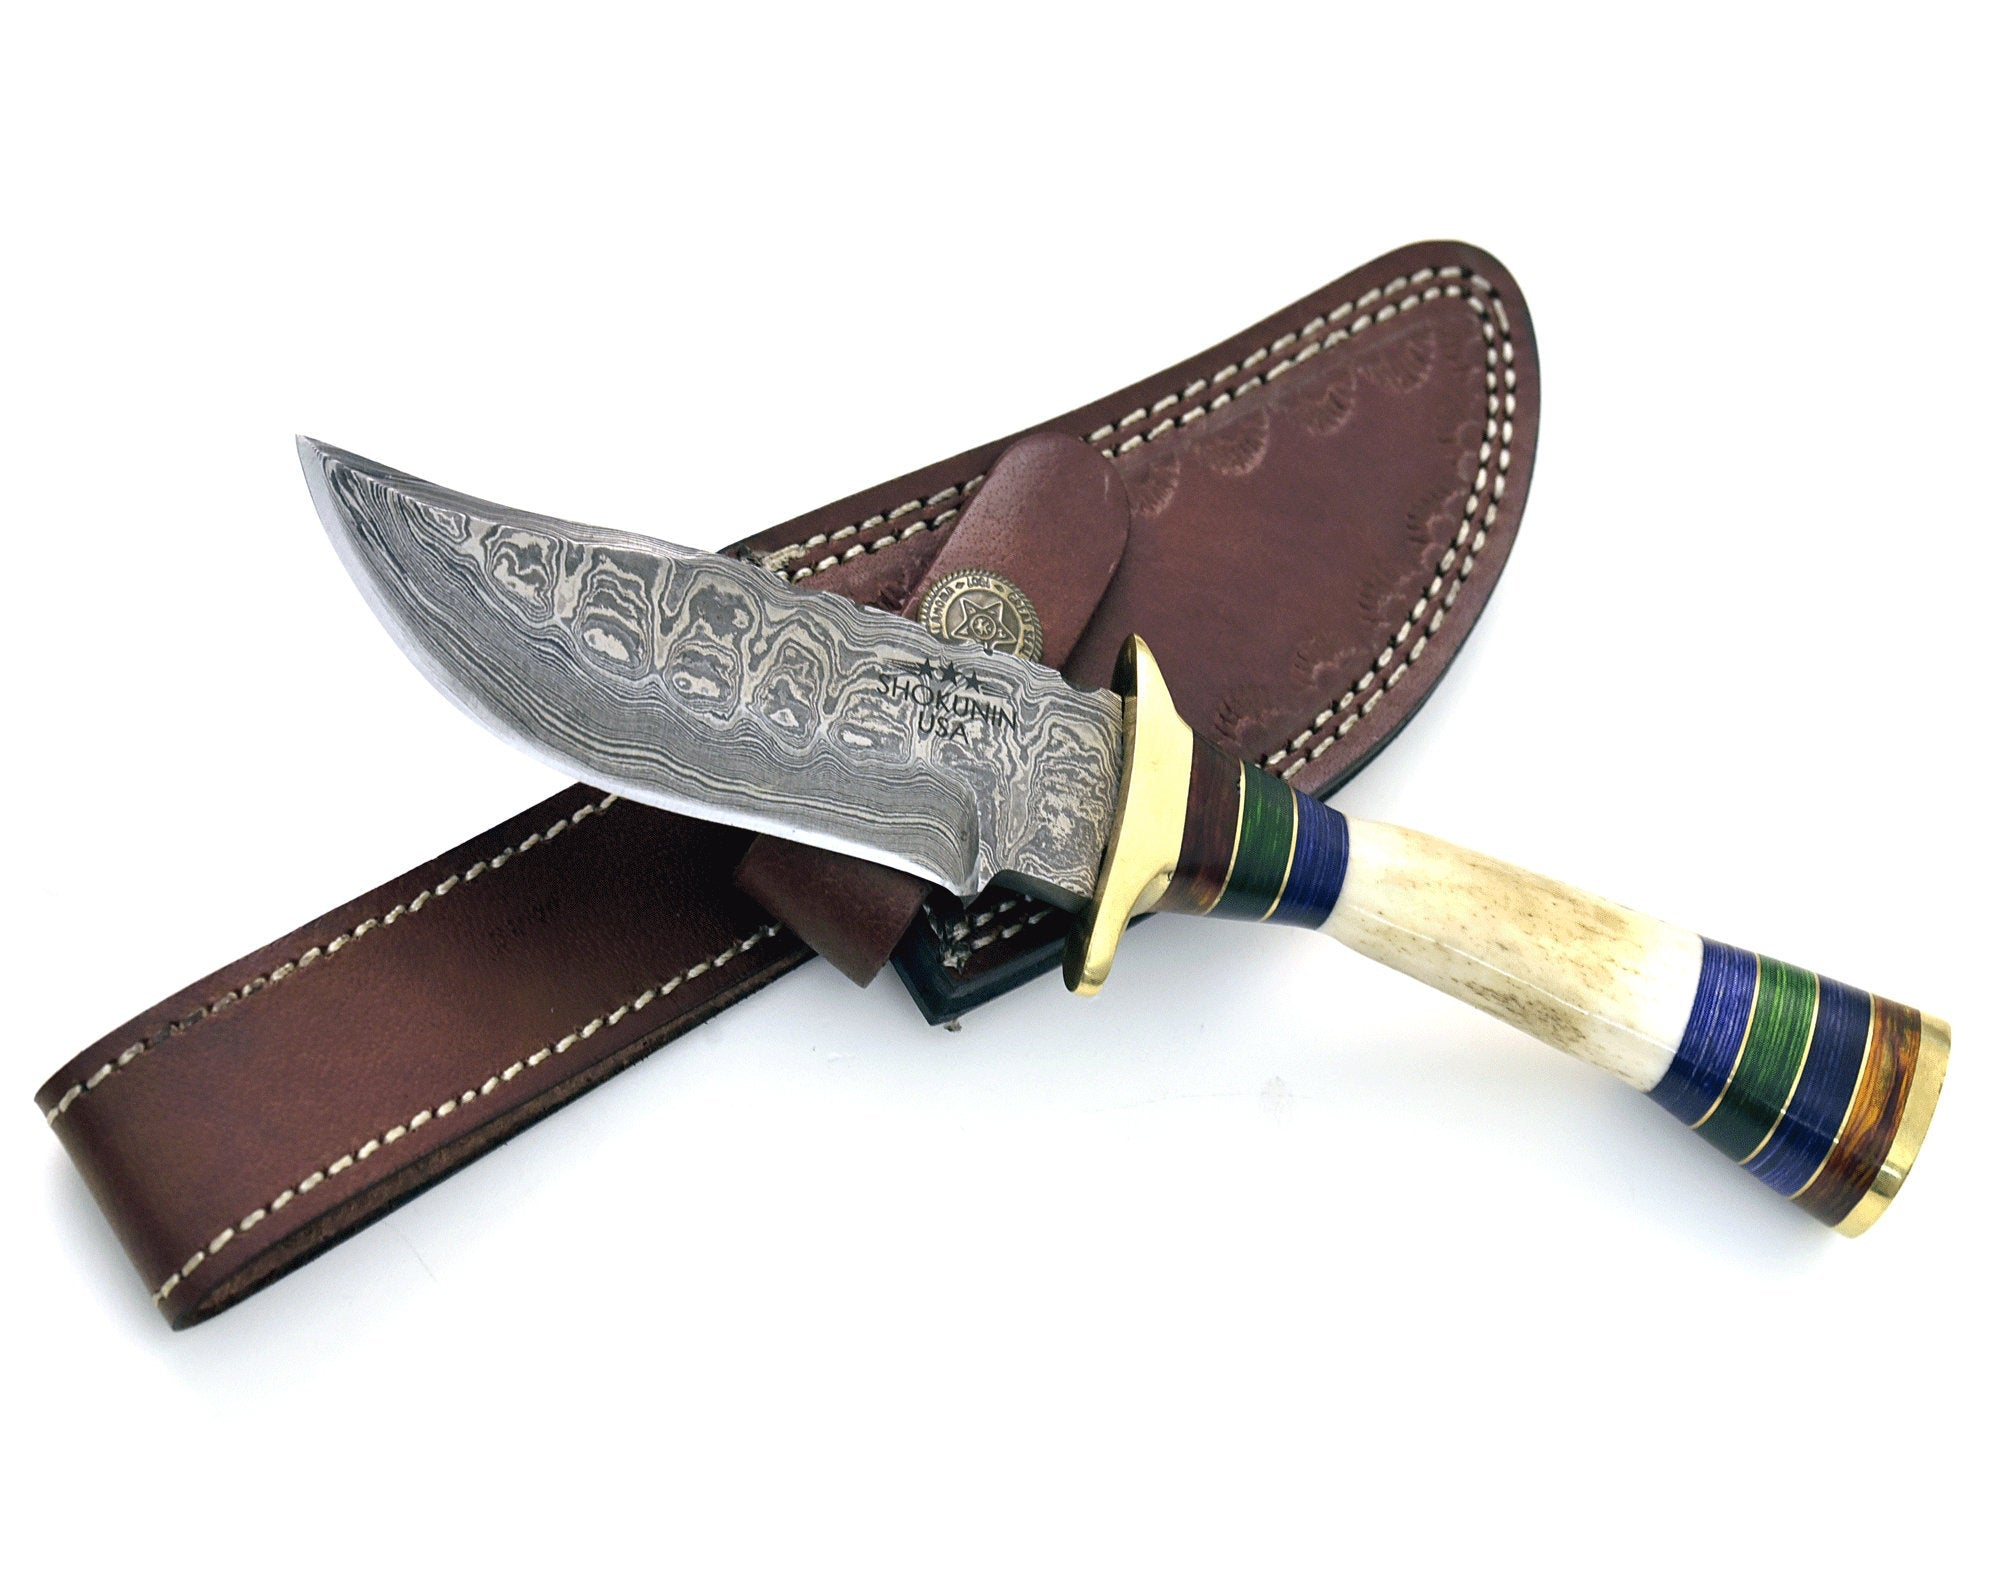 "8.0"" Custom Damascus knife, Damascus steel hunting knife tactical camping utility knife with hand stitched leather sheath stag handle - SHOKUNIN USA"